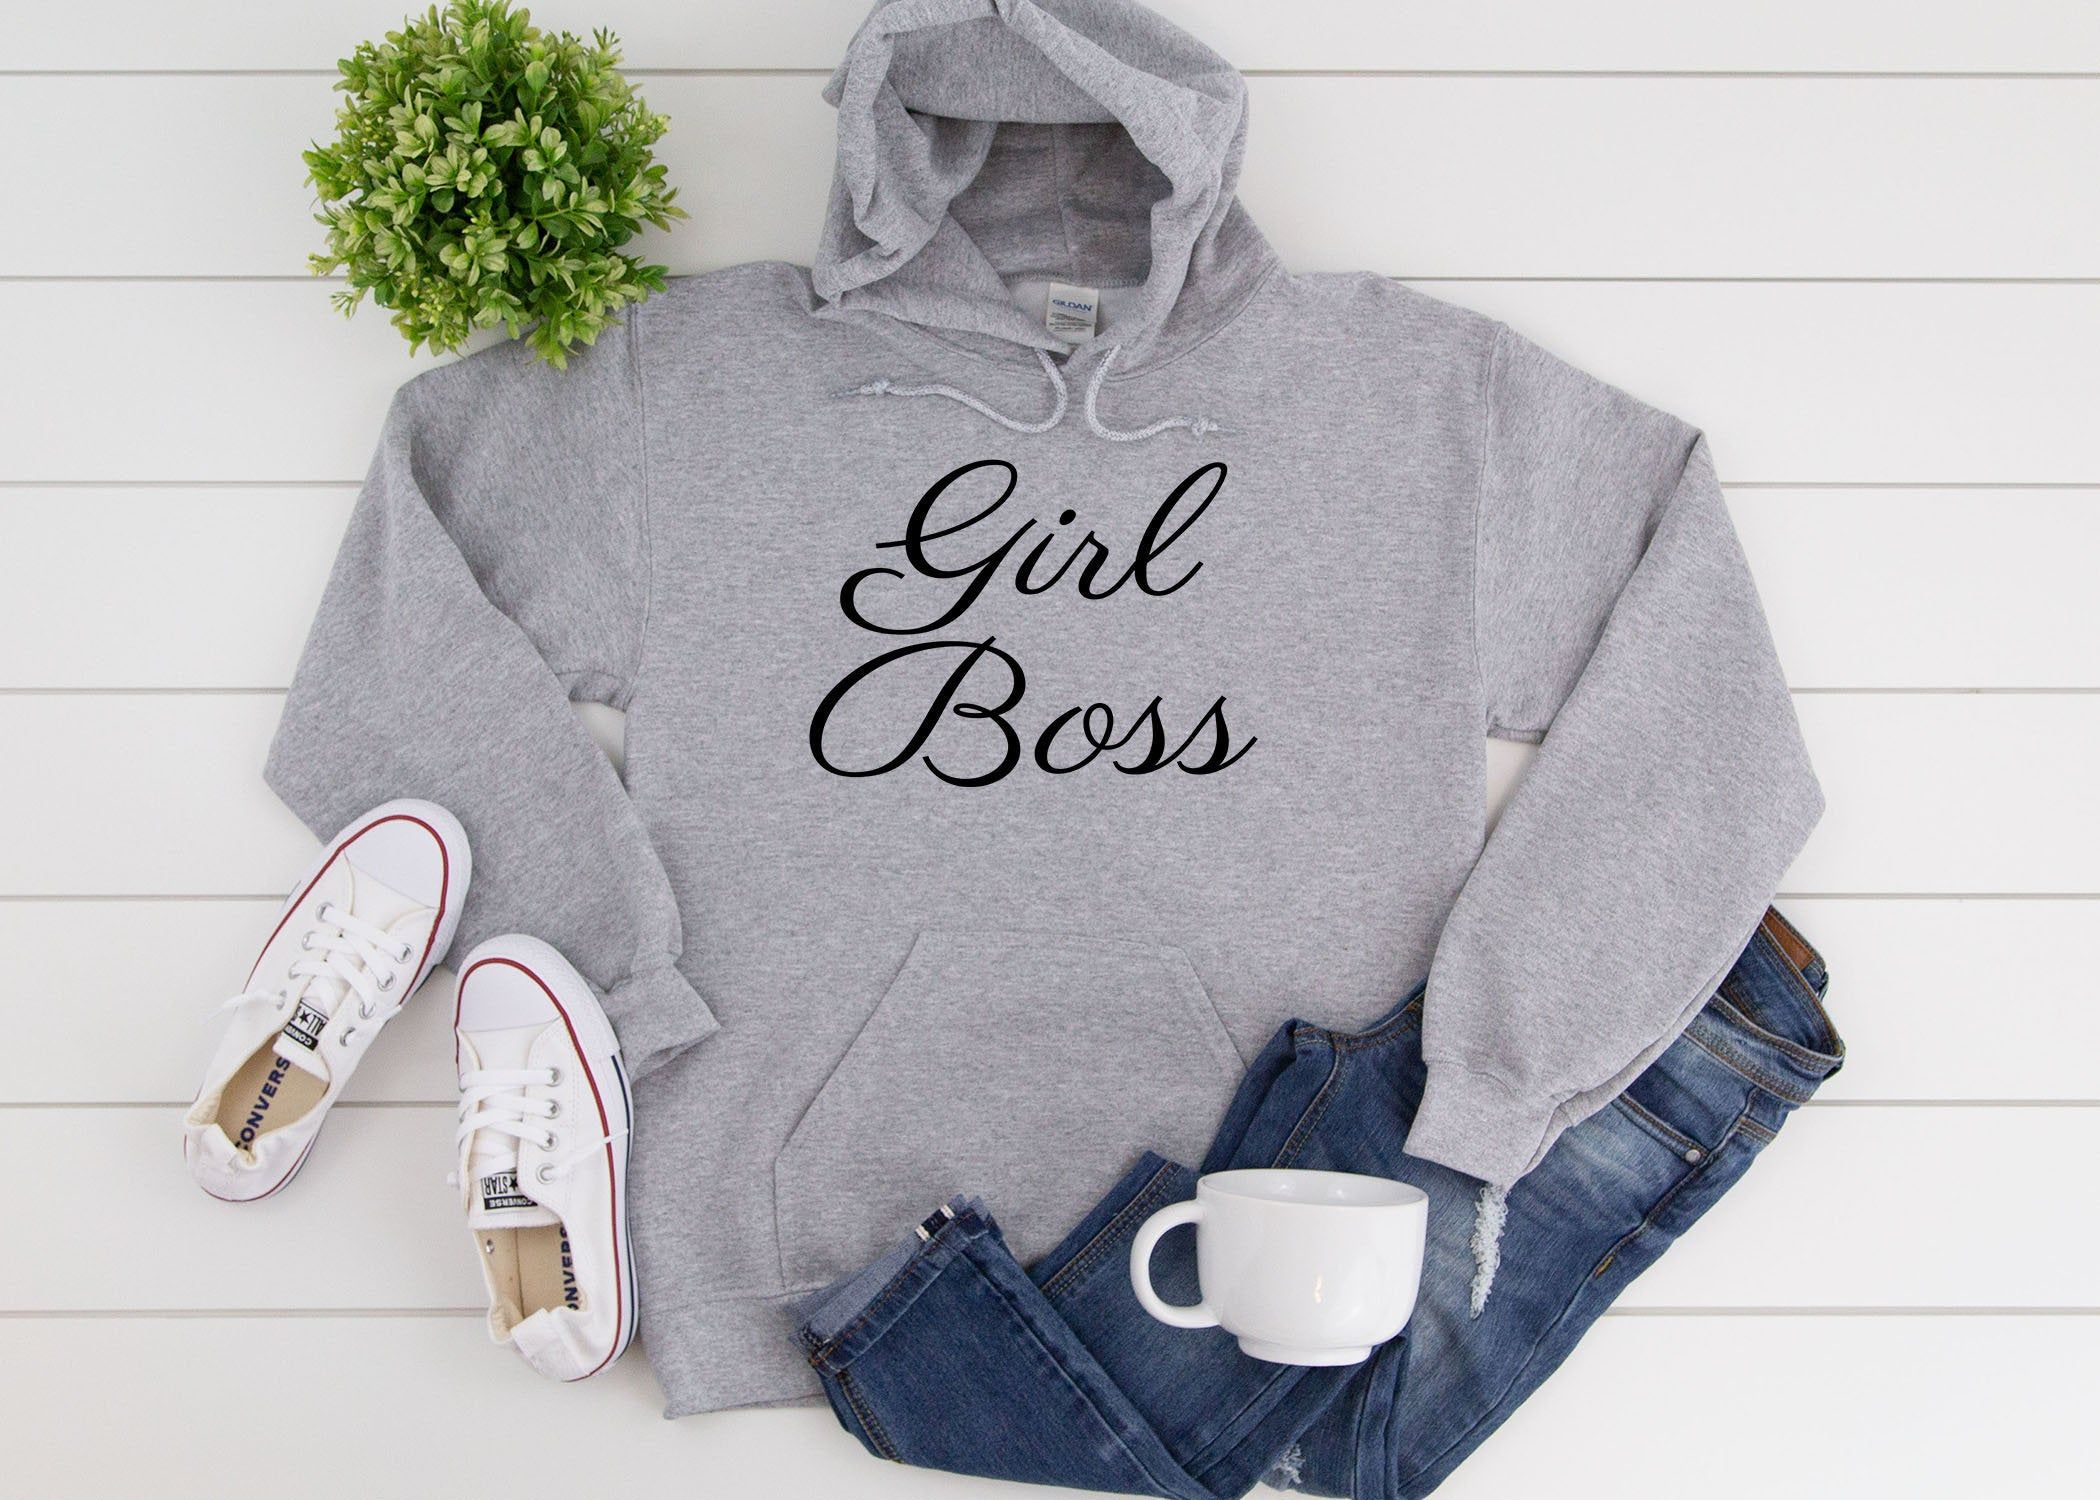 Womens Hoodie * Girl Boss Hoodie * Hoodies for Women *  Feminist * Inspirational Hoodie * Plus Size Clothing * Gifts for Her * 14